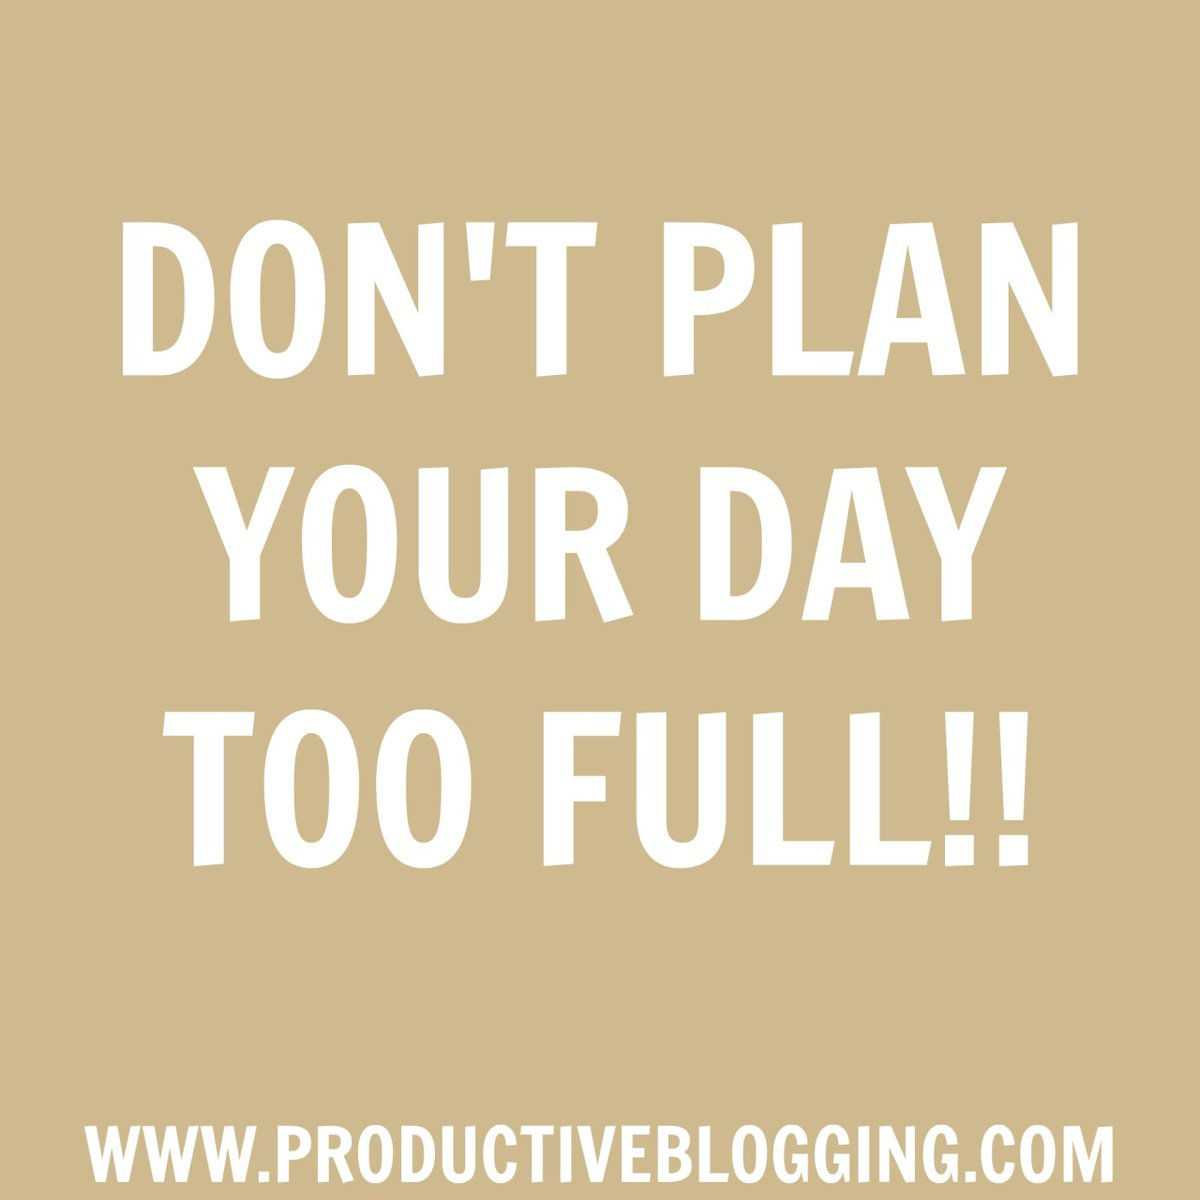 Don't plan your day too full!!  It's oh so easy to put on your to do list waaay too much - more than you could ever fit into one day.  Instead take the opposite approach - plan to do less than you can fit into your day. You will be happier and more productive.  #wednesdaywisdom